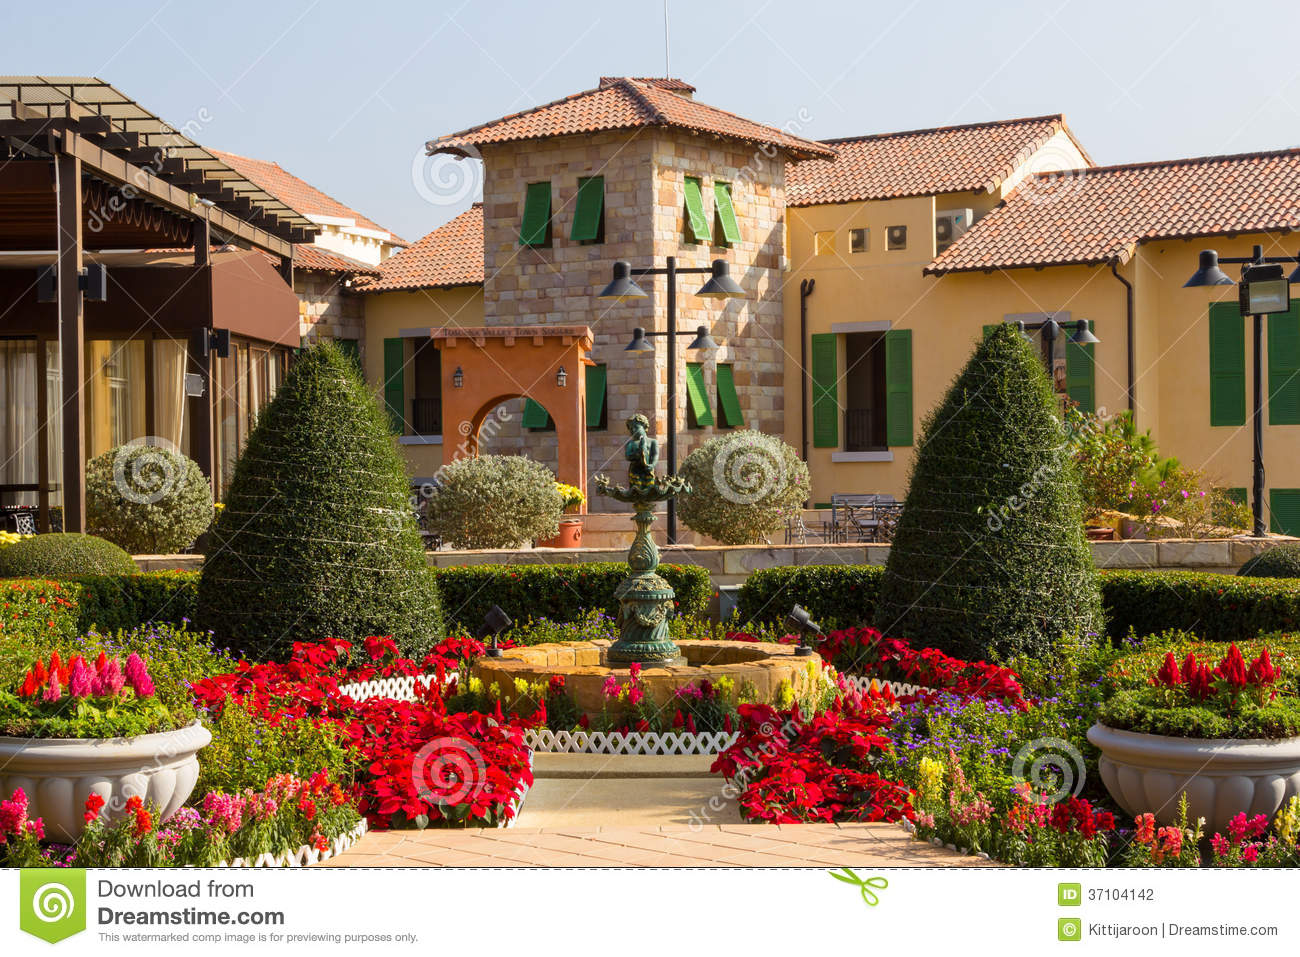 D coration de b timent de style de l 39 italie de jardin d for Decoration 31 decembre